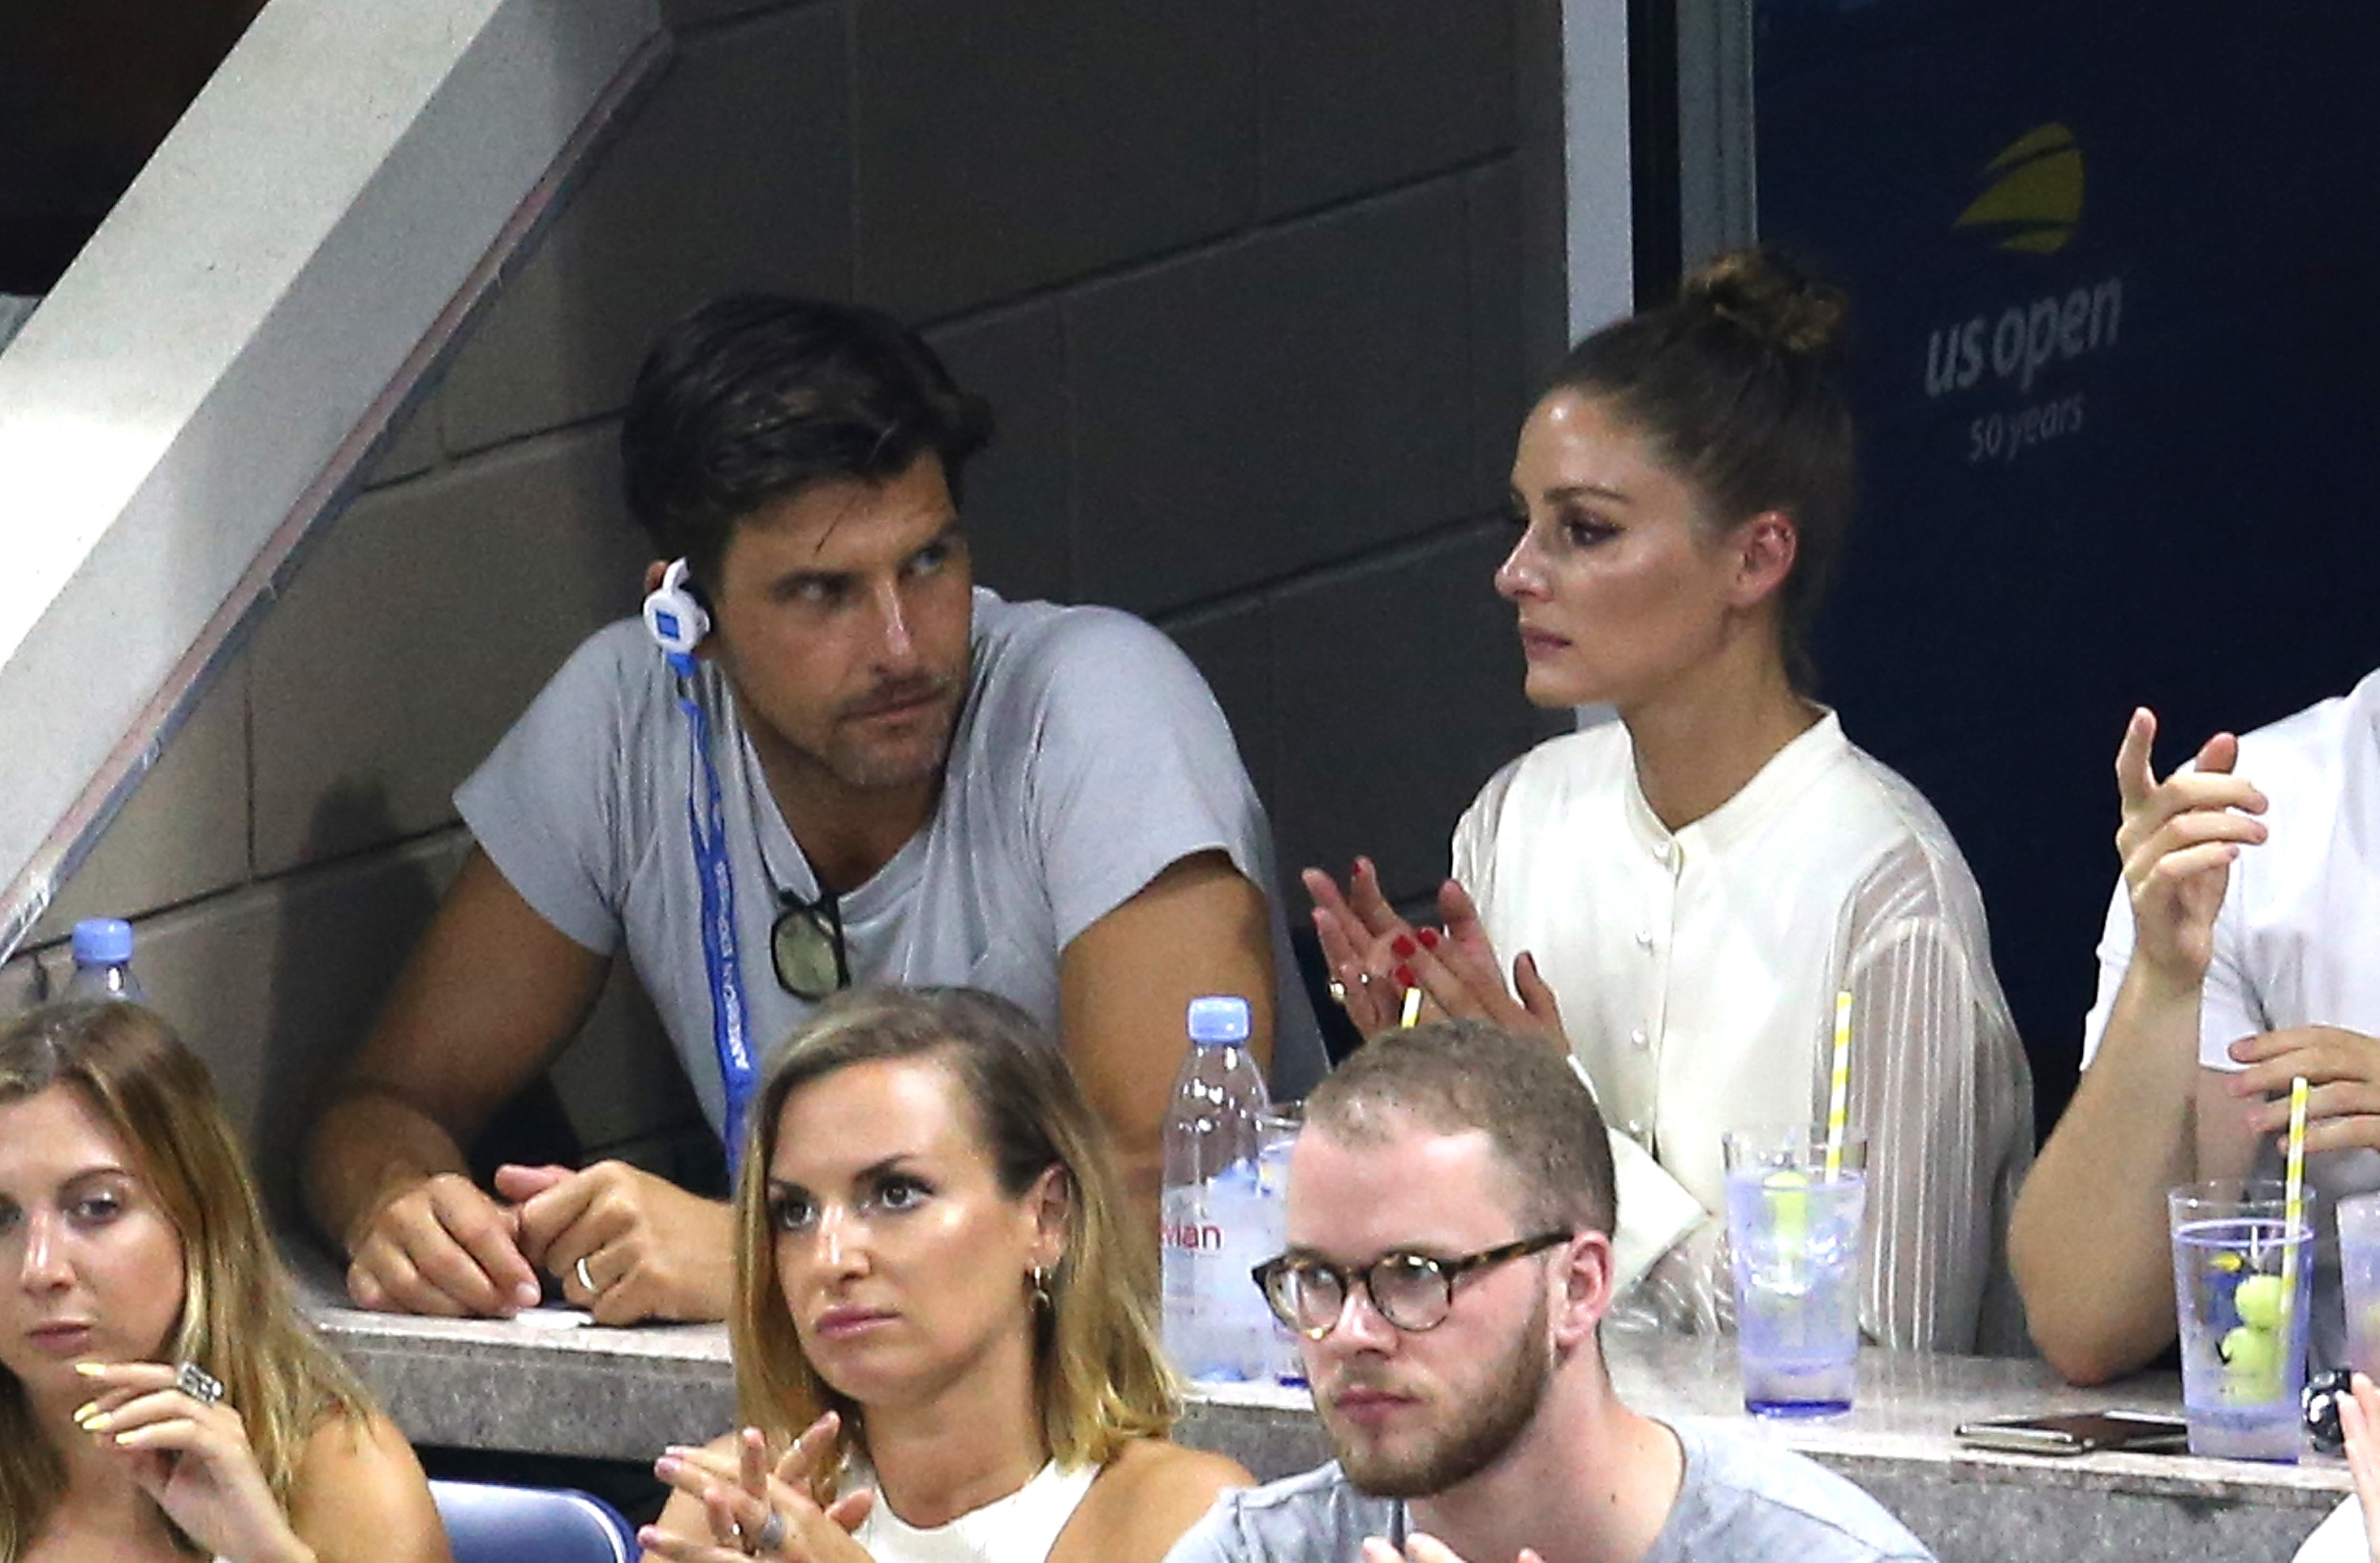 NEW YORK, NY - SEPTEMBER 03: Olivia Palermo and husband Johannes Huebl visit the Grey Goose suite at Arthur Ashe Stadium during the 2018 US Open at the USTA Billie Jean King National Tennis Center on September 3, 2018 in the Flushing neighborhood of the Queens borough of New York City. (Photo by Getty Images/Getty Images for Grey Goose)